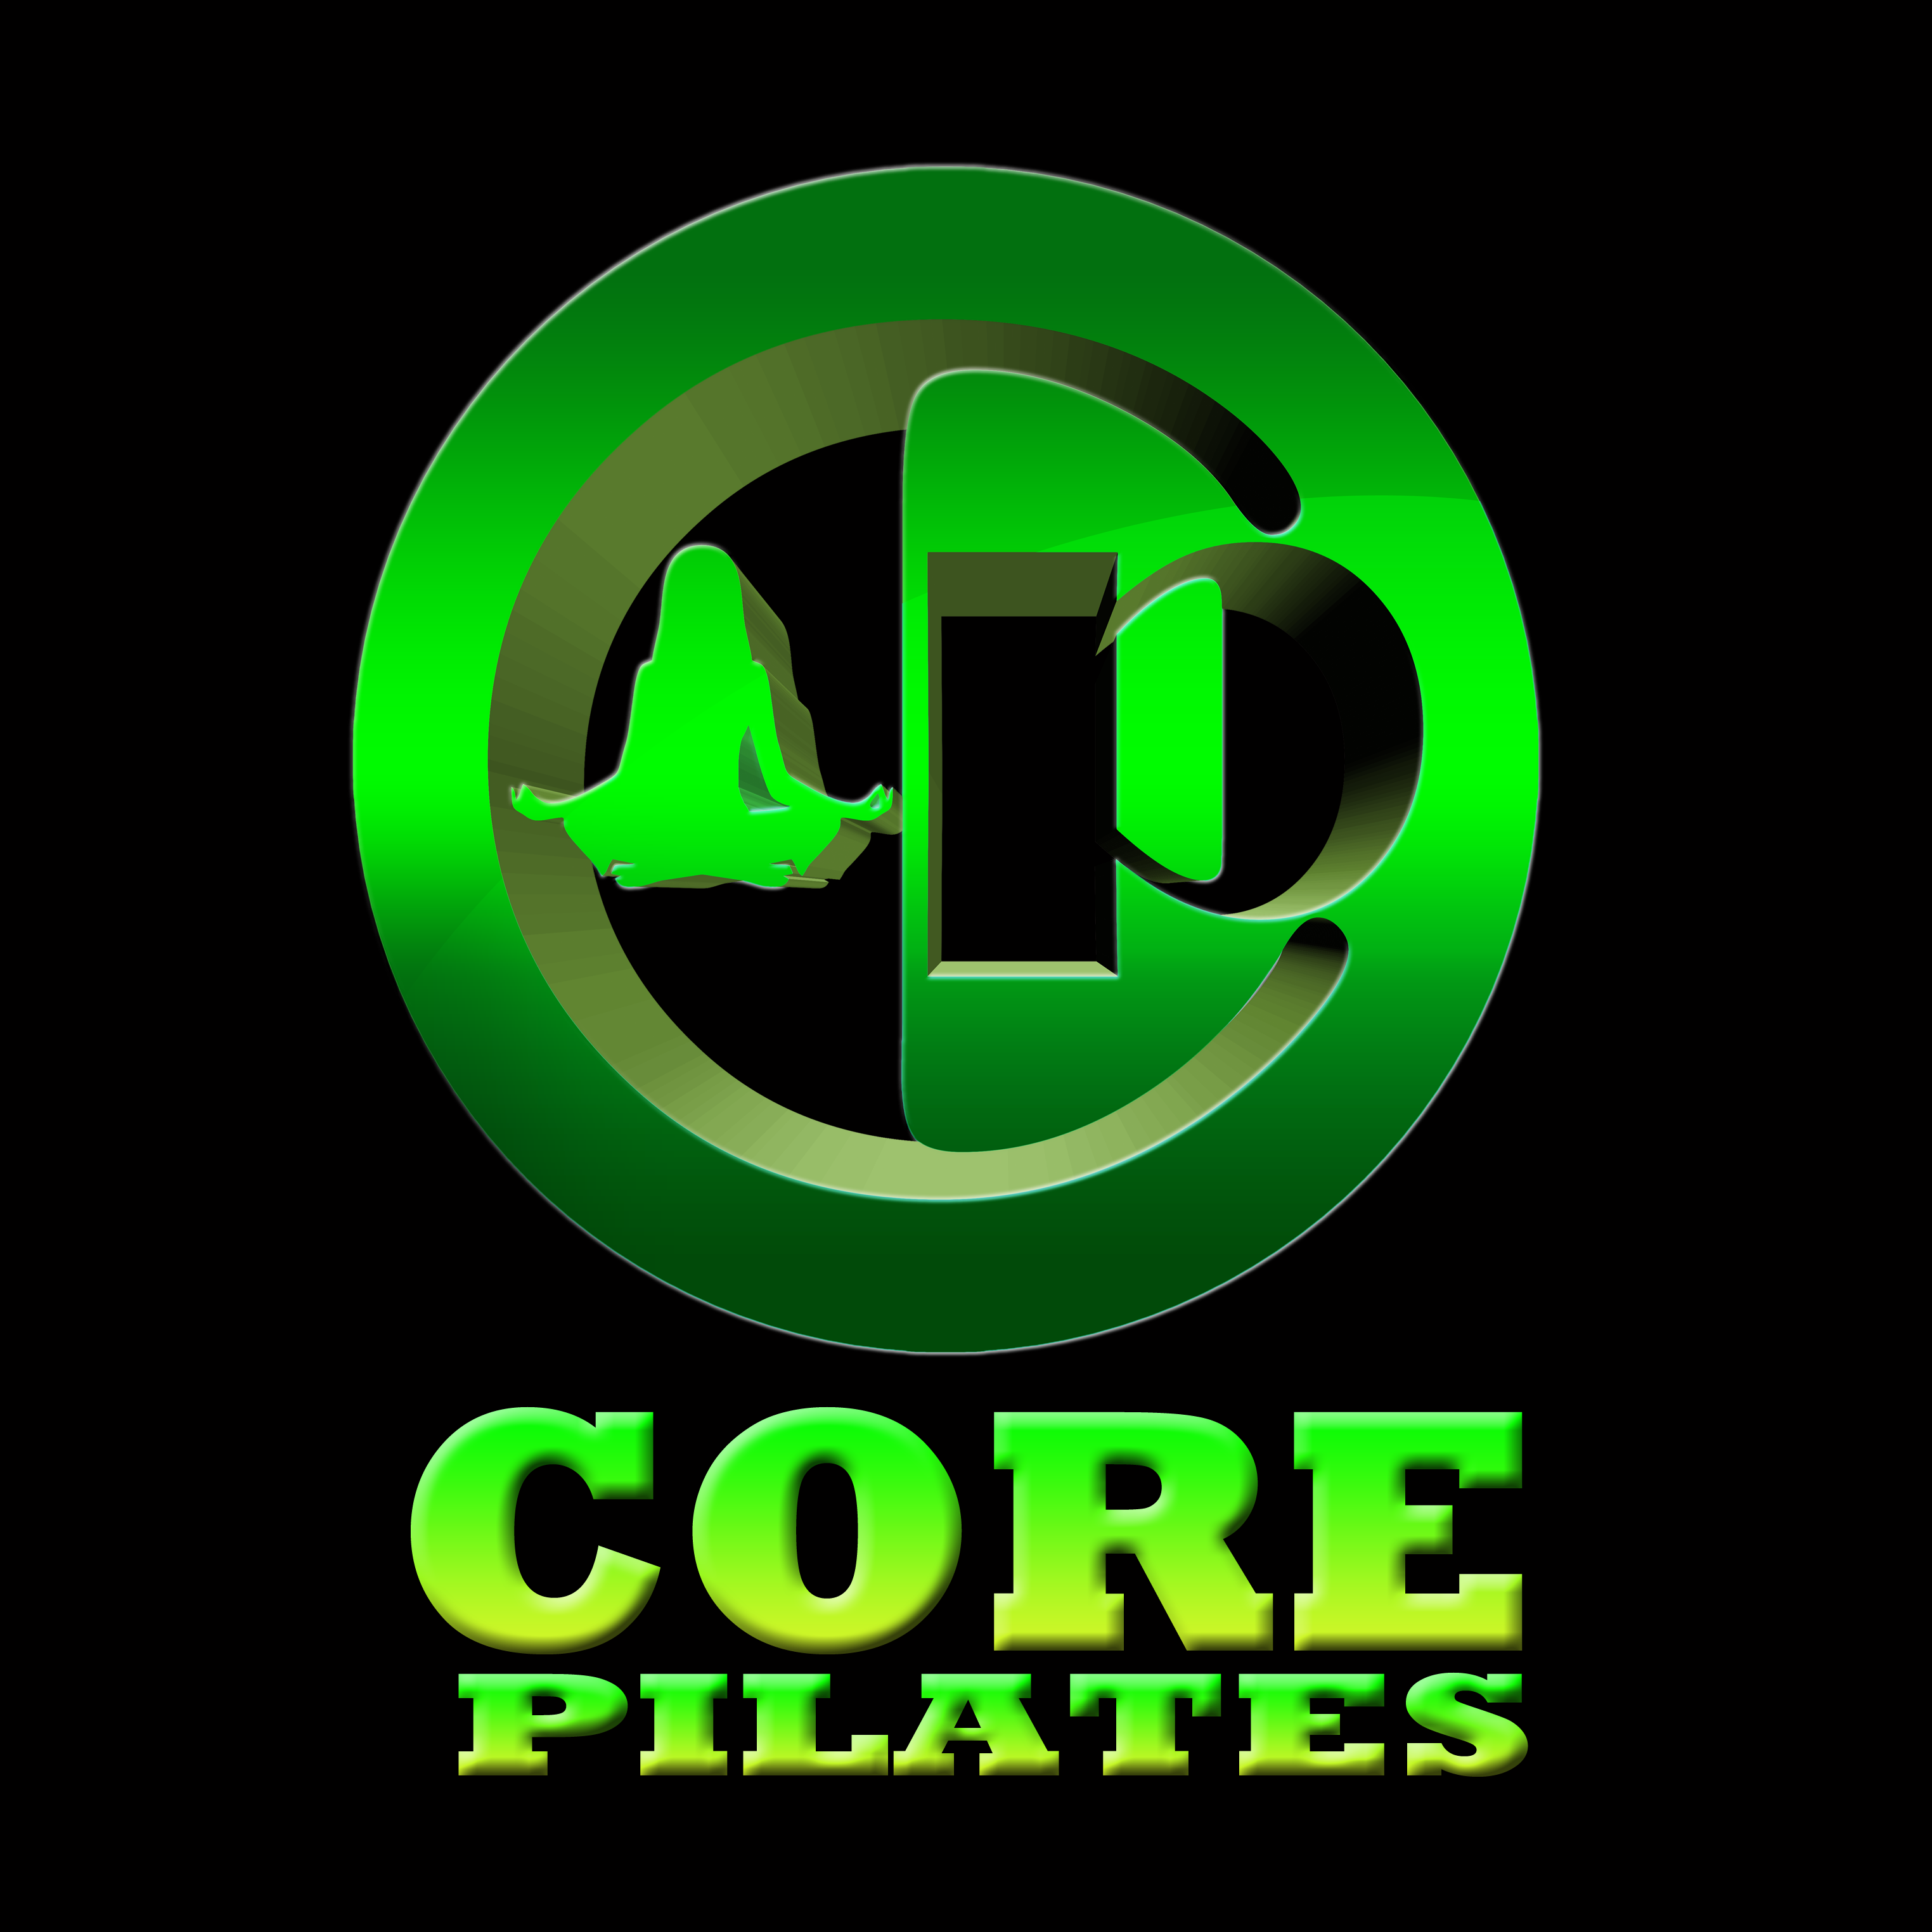 Logo Design by Crispin Vasquez - Entry No. 138 in the Logo Design Contest Core Pilates Logo Design.